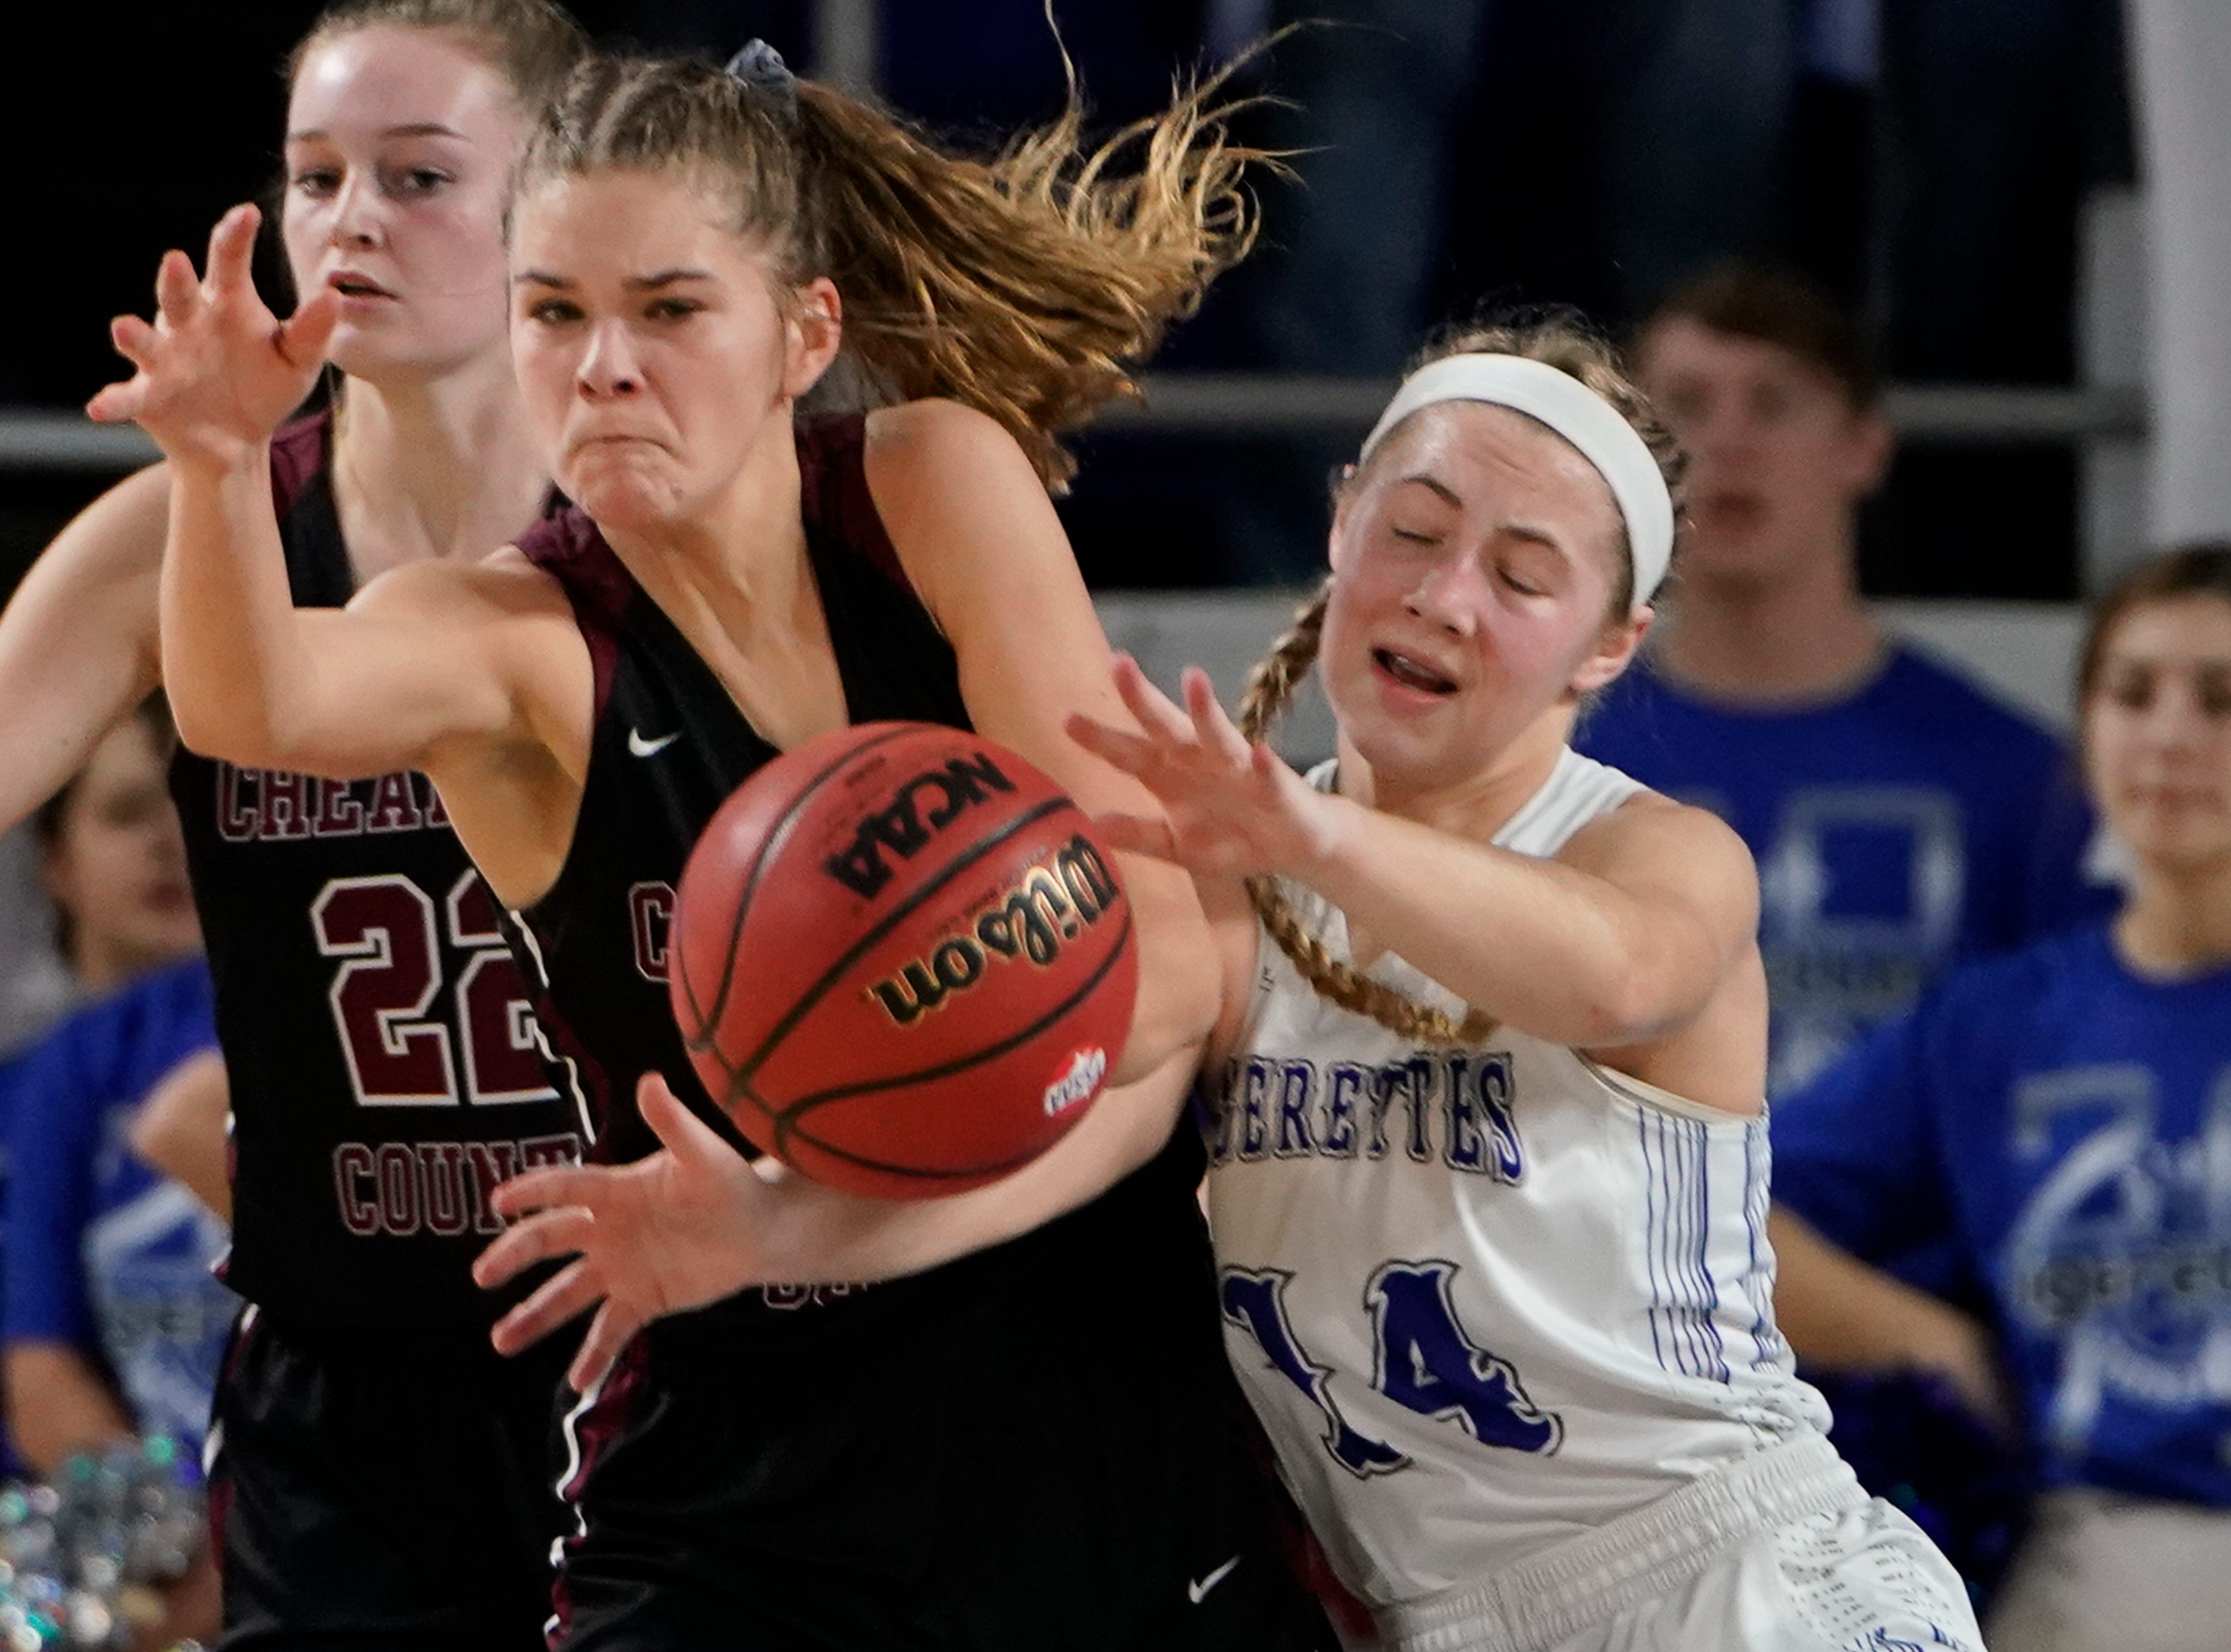 Cheatham Co. guard Emmy Nelson (3) and Macon Co. guard Abby Shoulders (14) battle for the ball during the second half of their semifinal game in the Division I Class AA Girls TSSAA Girls State Championships at Murphy Center Friday, March 8, 2019 in Murfreesboro, Tenn.